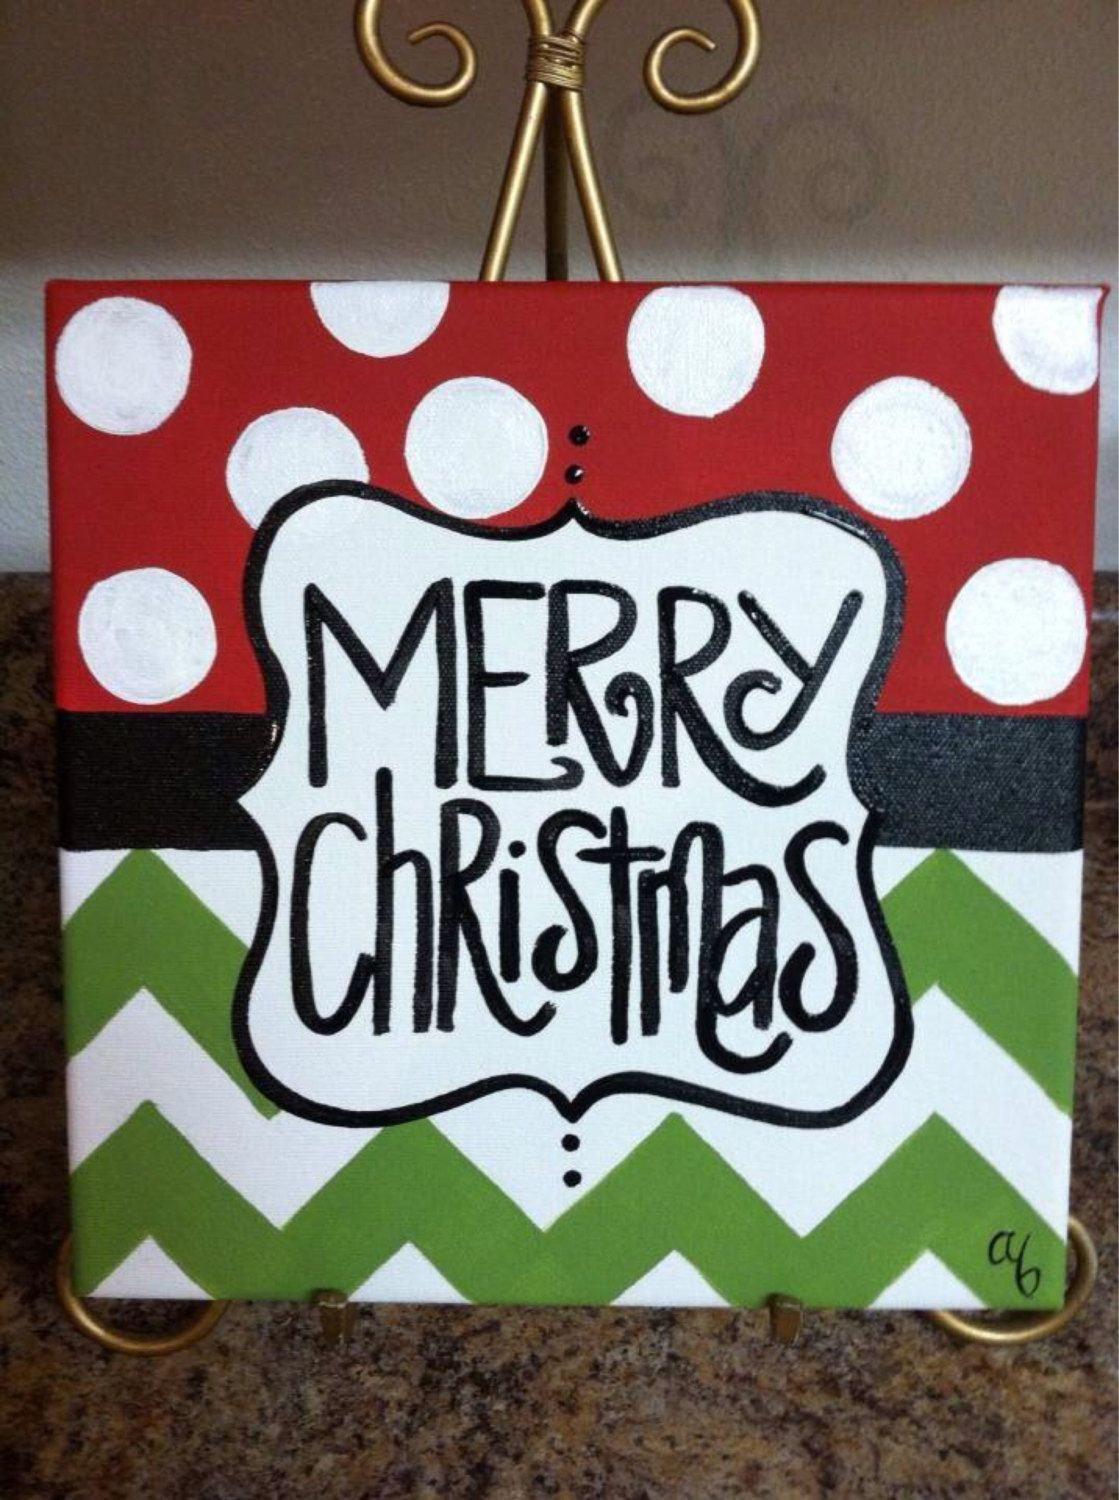 12x12 Christmas Canvases By Artbyab On Etsy Easy Enough To So At Home